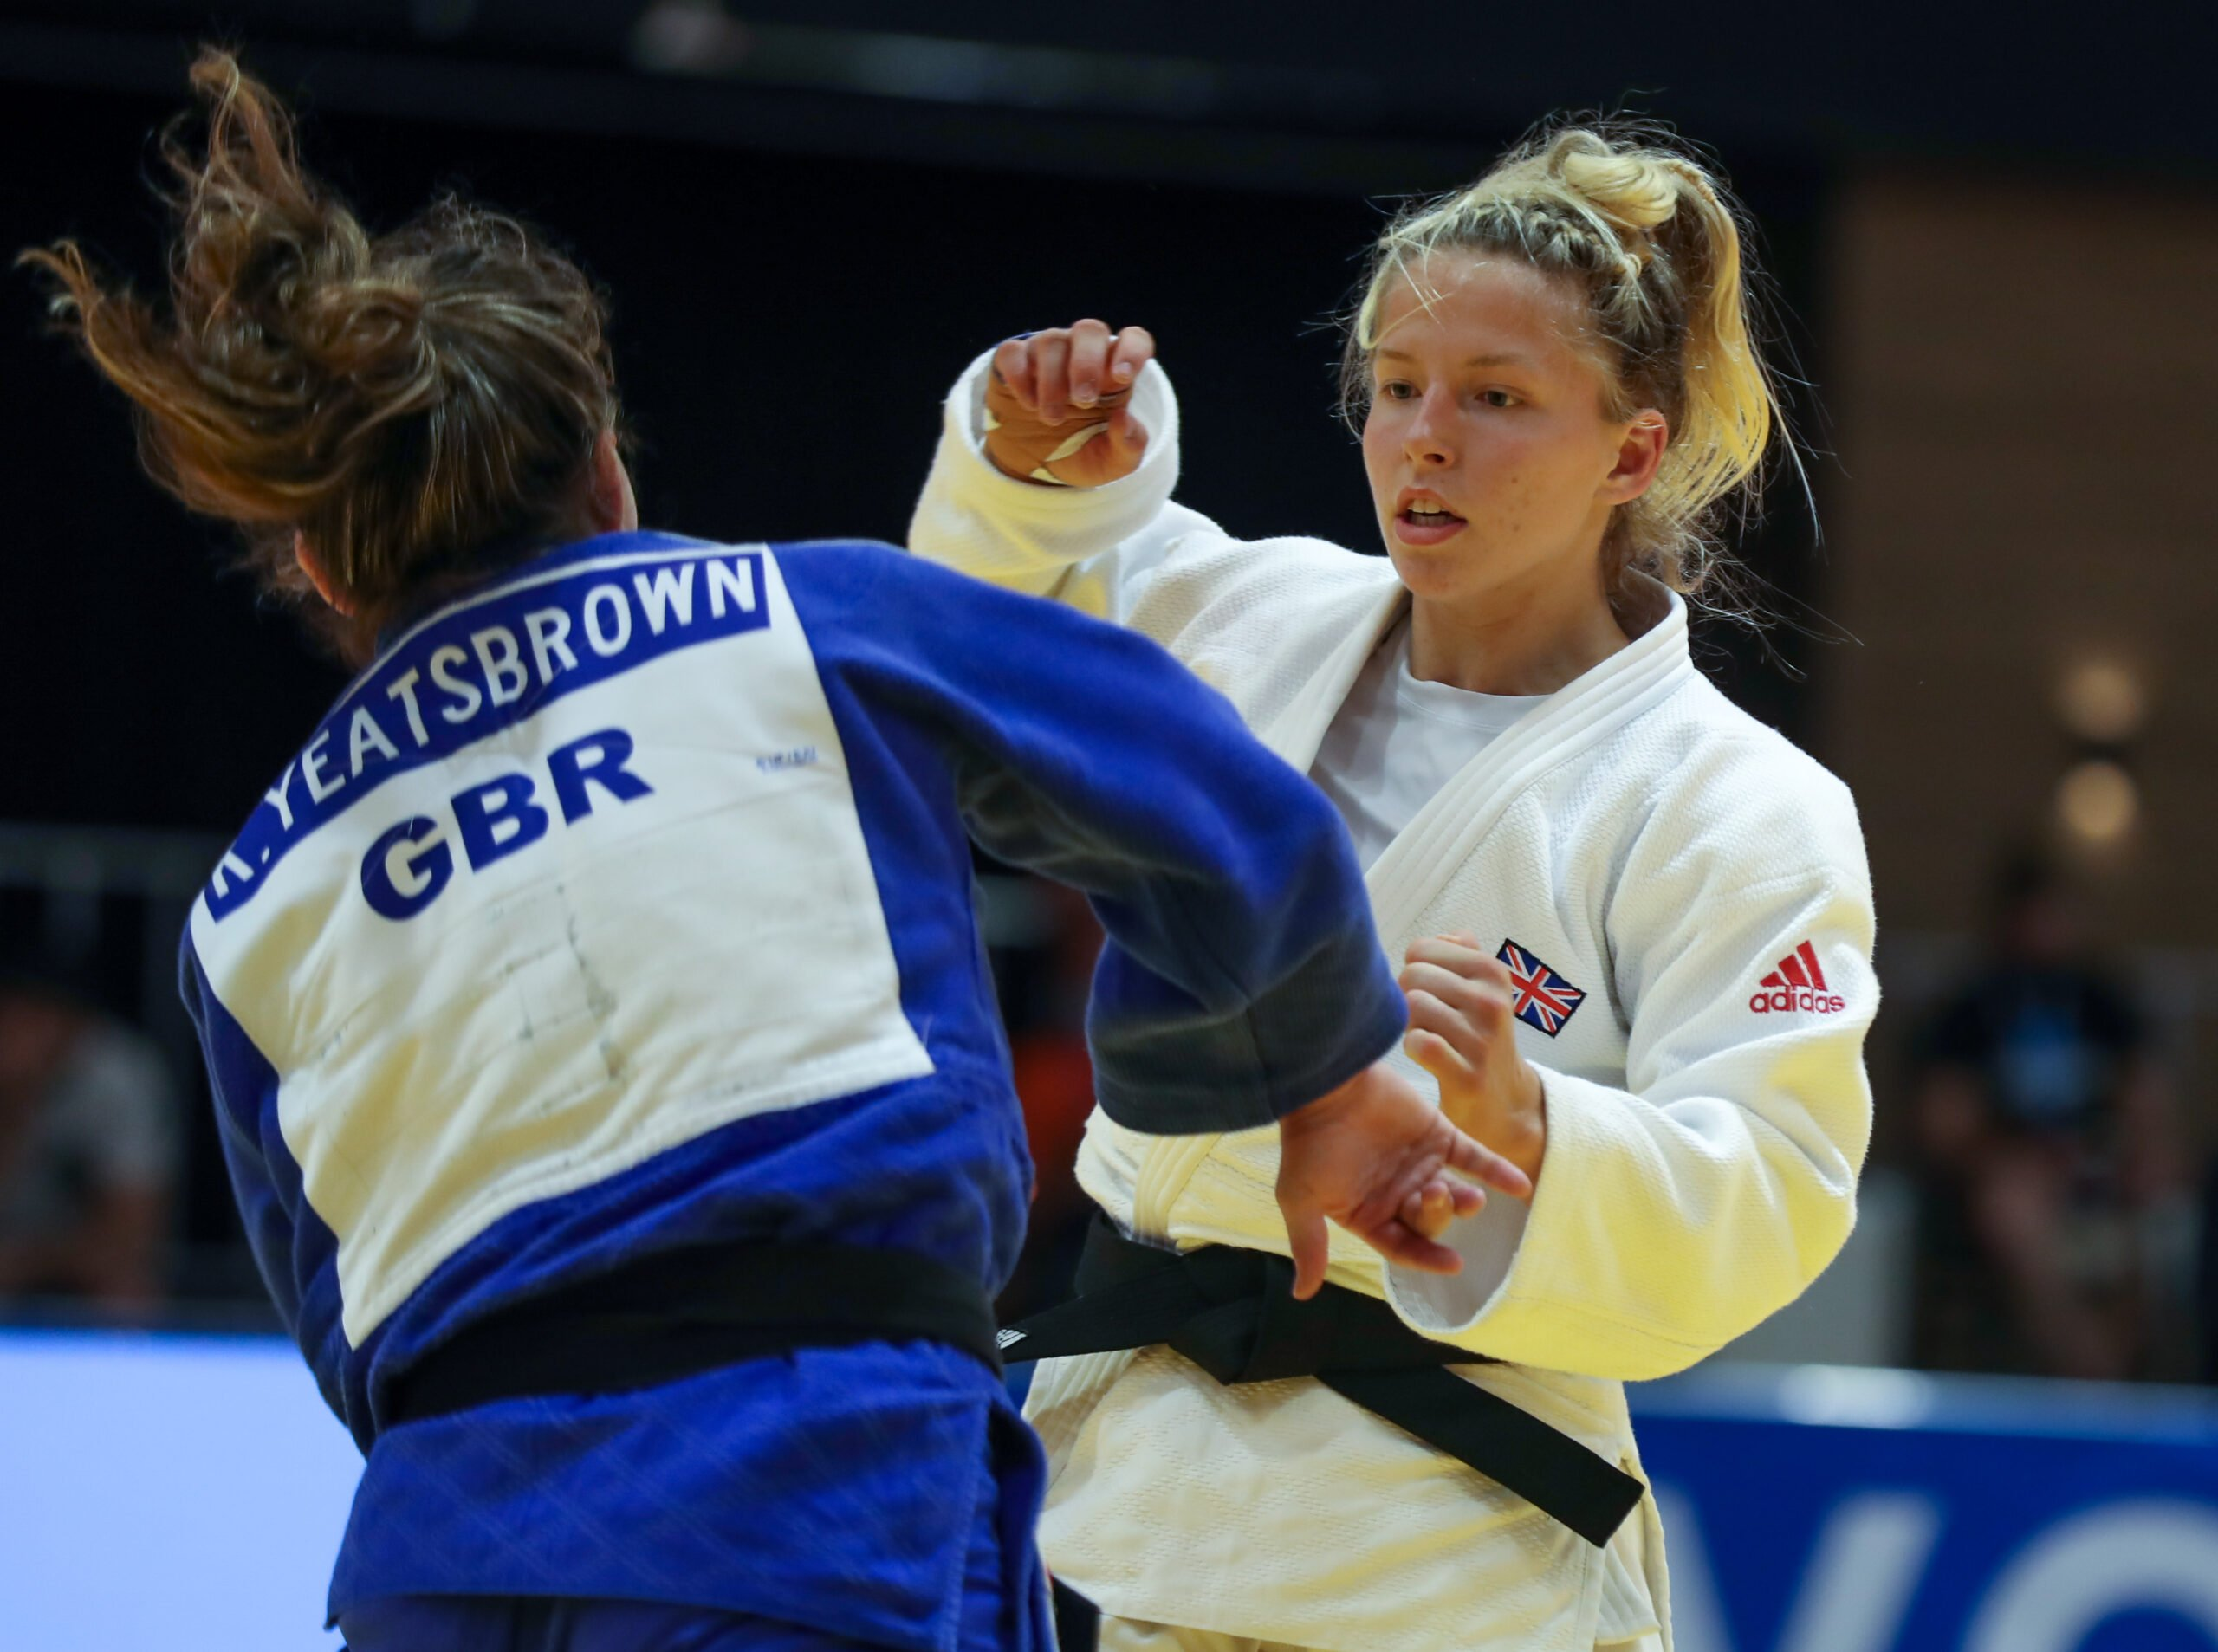 PETERSEN POLLARD AND PIETRI STEAL SHOW ON DAY TWO IN SARAJEVO